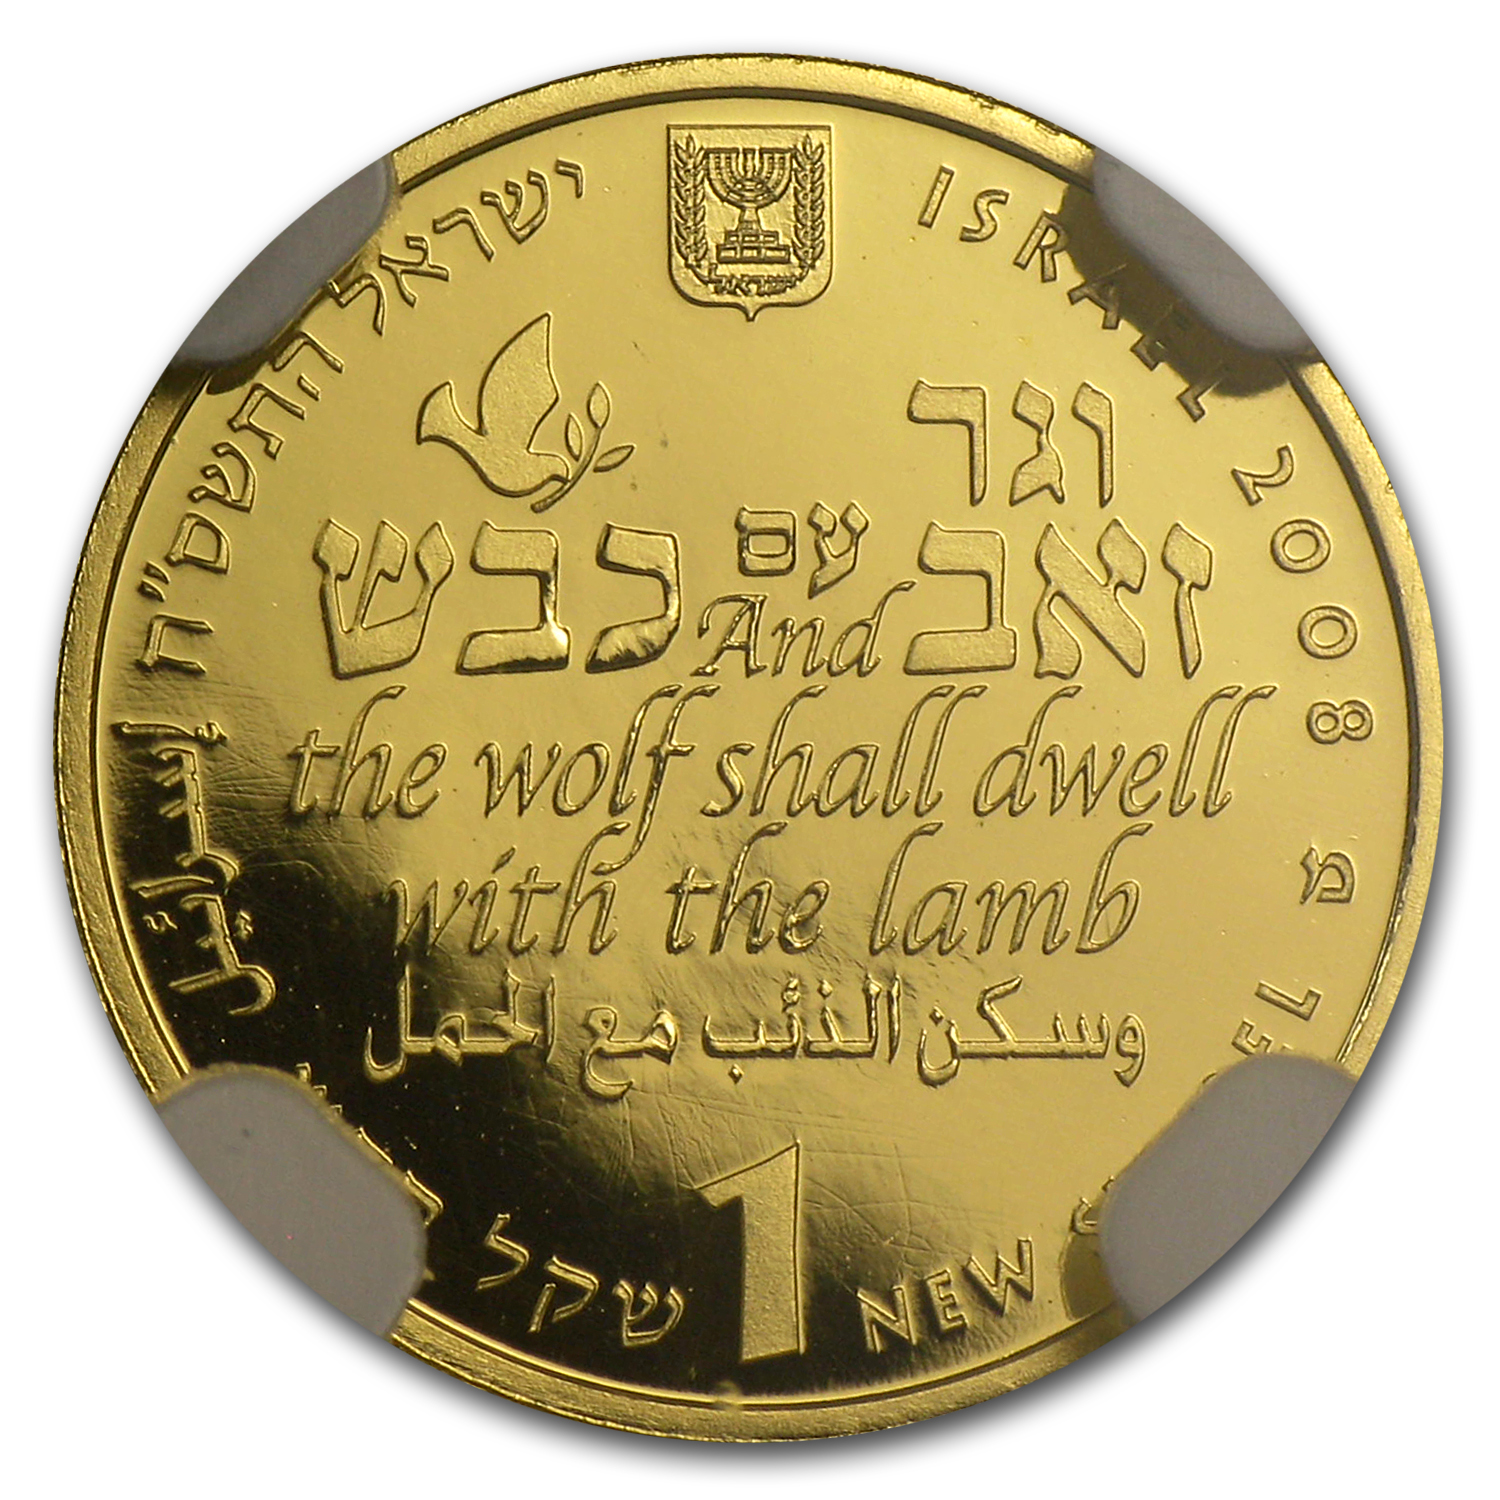 2008 Israel Wolf & the Lamb Smallest Gold Coin PF-70 UCAM NGC